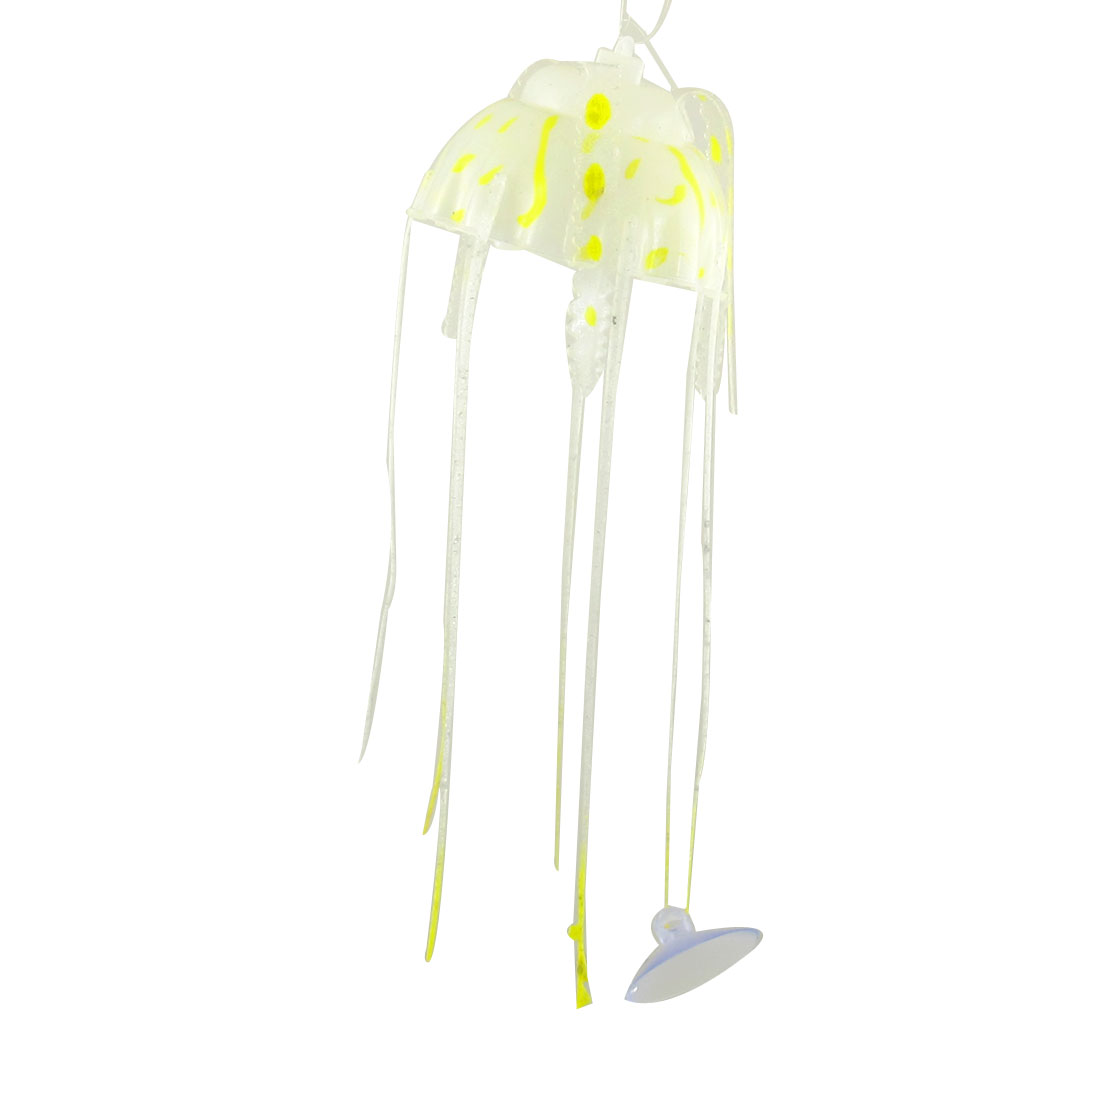 Emulational Soft Plastic Jelly Fish Ornament Yellow Clear for Aquarium Tanks